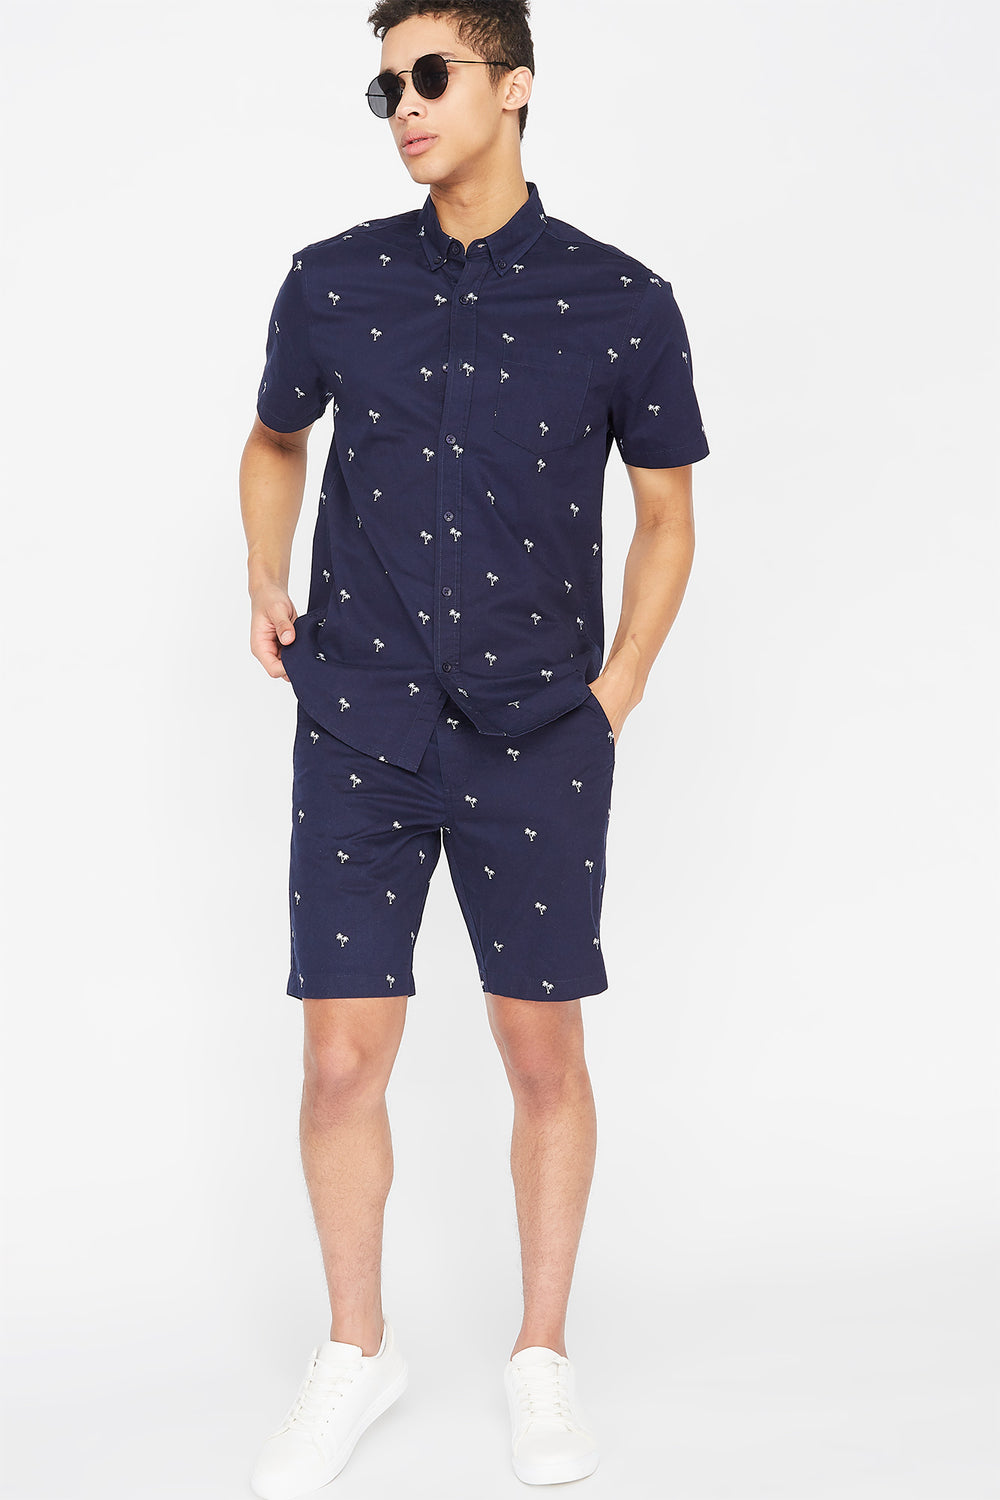 Printed Button-Up Short Sleeve Top Navy